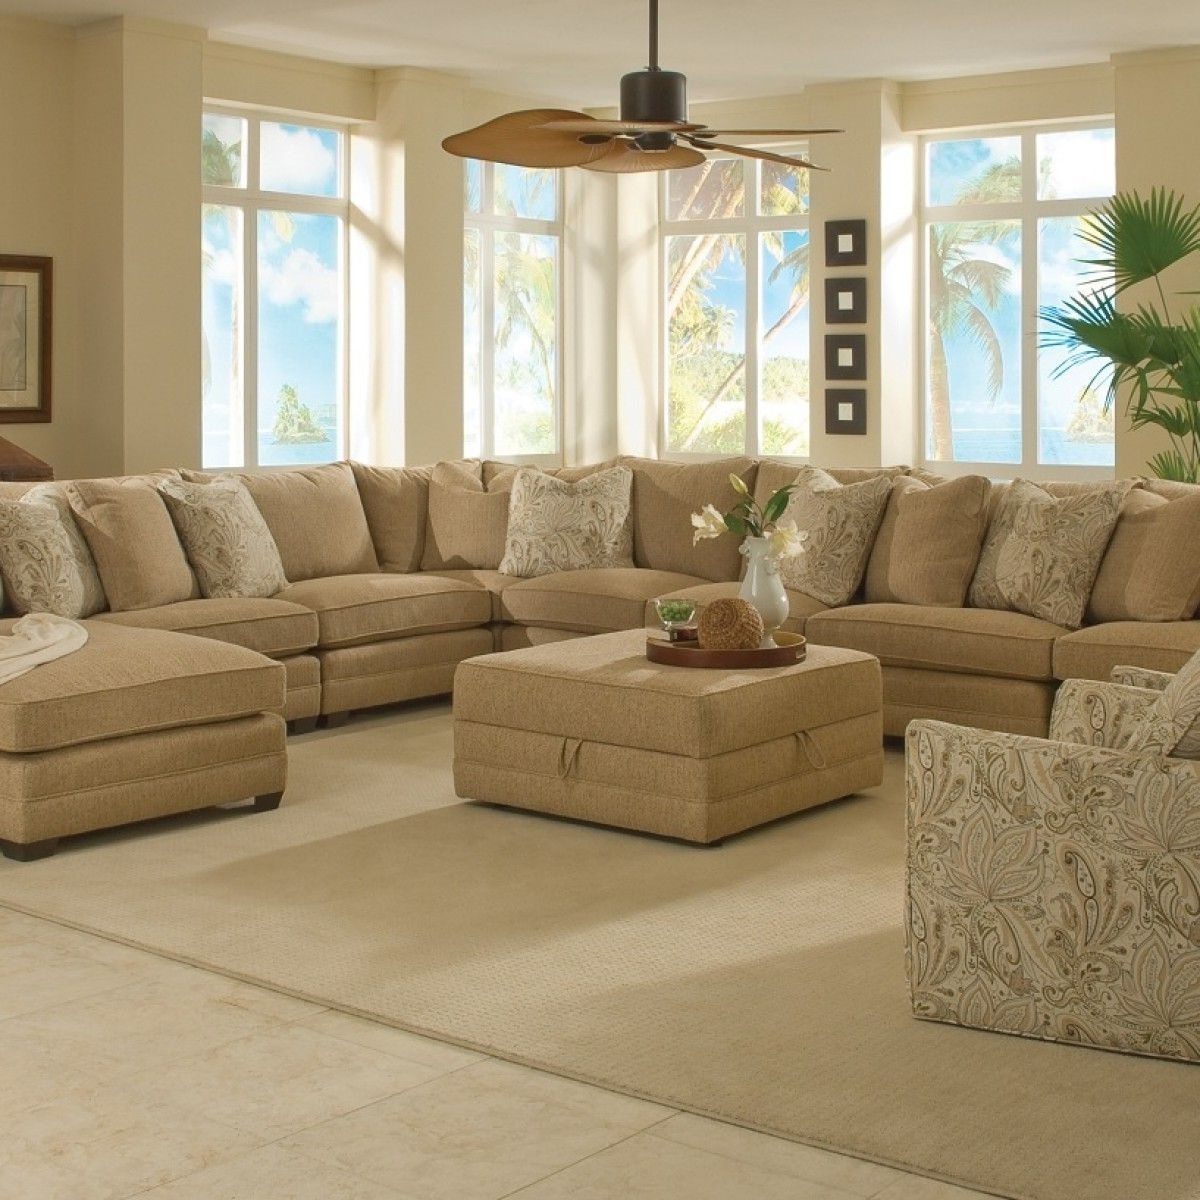 Gallery Furniture Sectional Sofas Throughout Famous Magnificent Large Sectional Sofas (View 15 of 20)